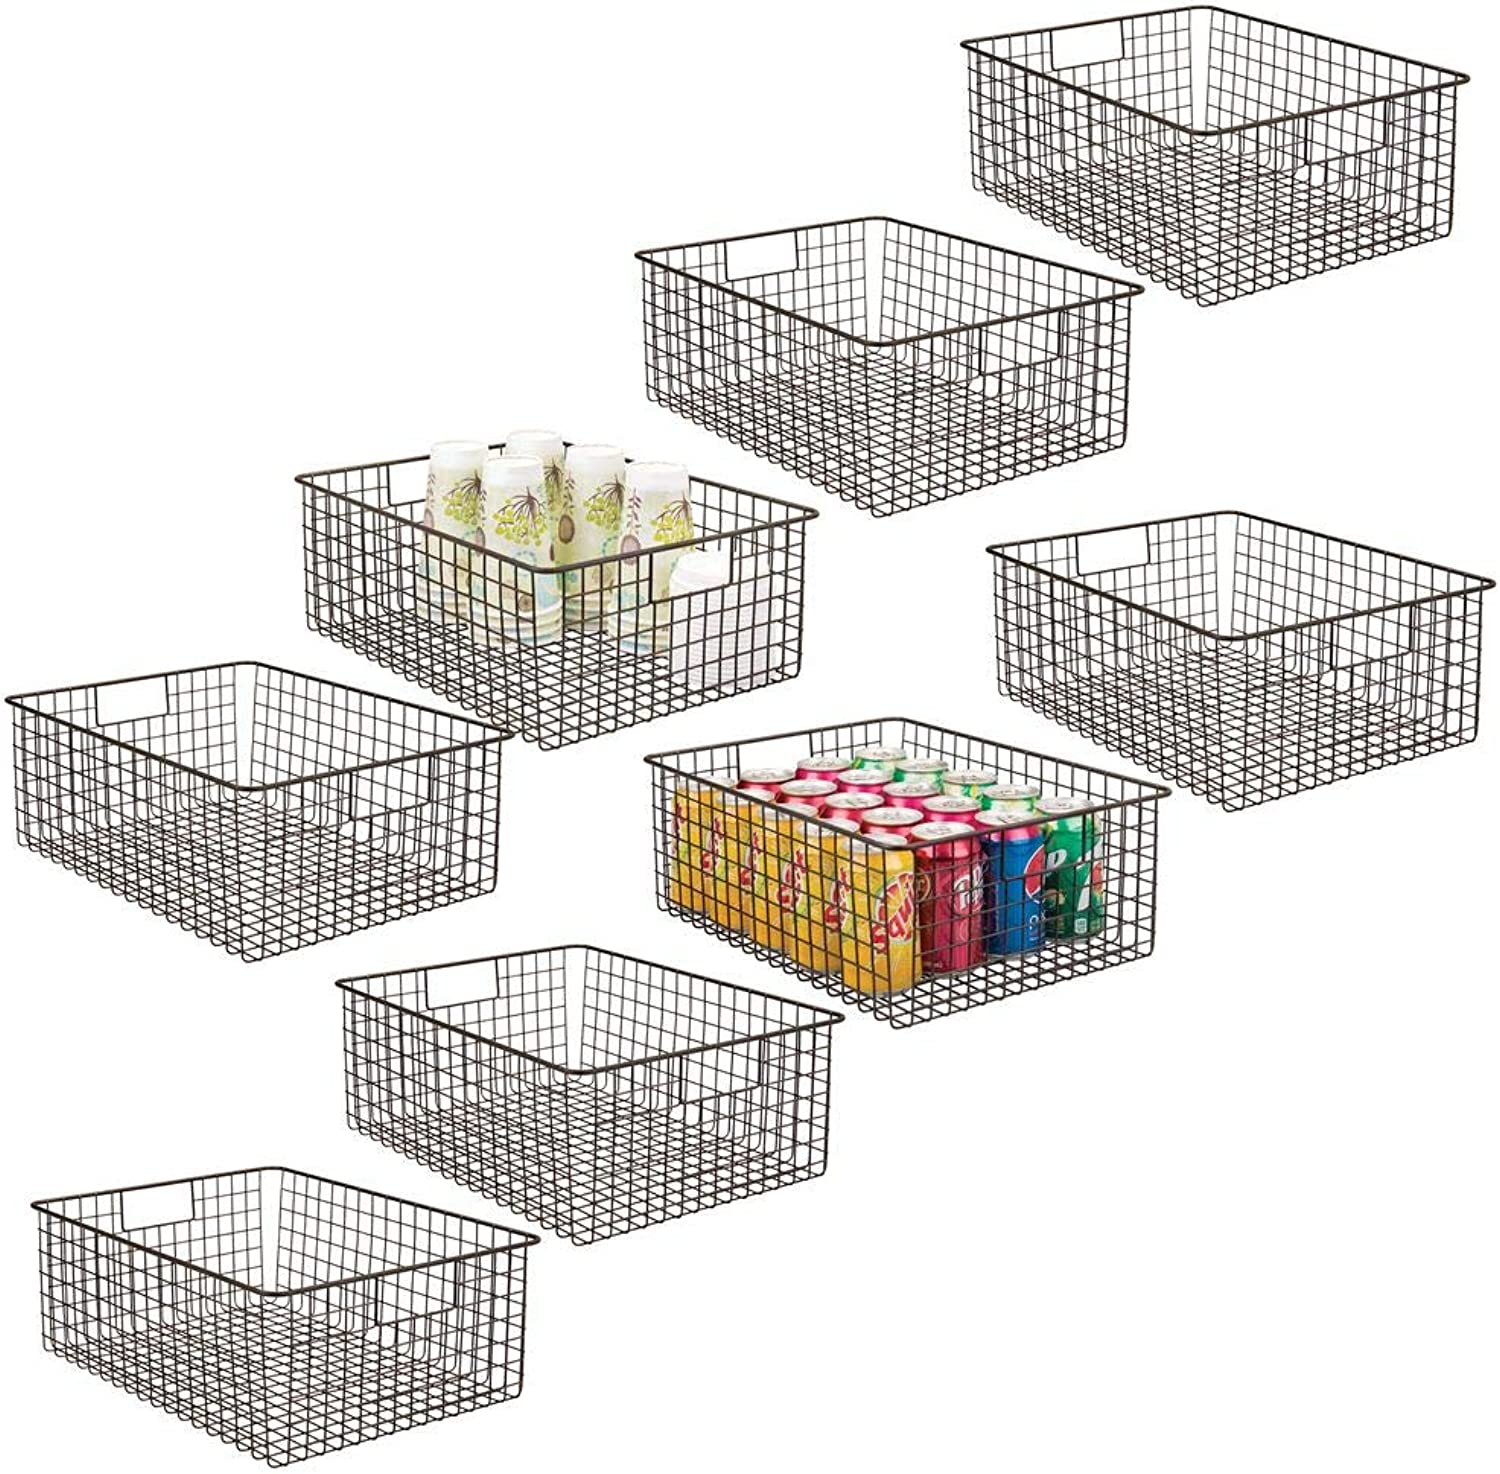 MDesign Farmhouse Decor Metal Wire Food Organizer Storage Bin Baskets with Handles for Kitchen Cabinets, Pantry, Bathroom, Laundry Room, Closets, Garage - 8 Pack - Bronze